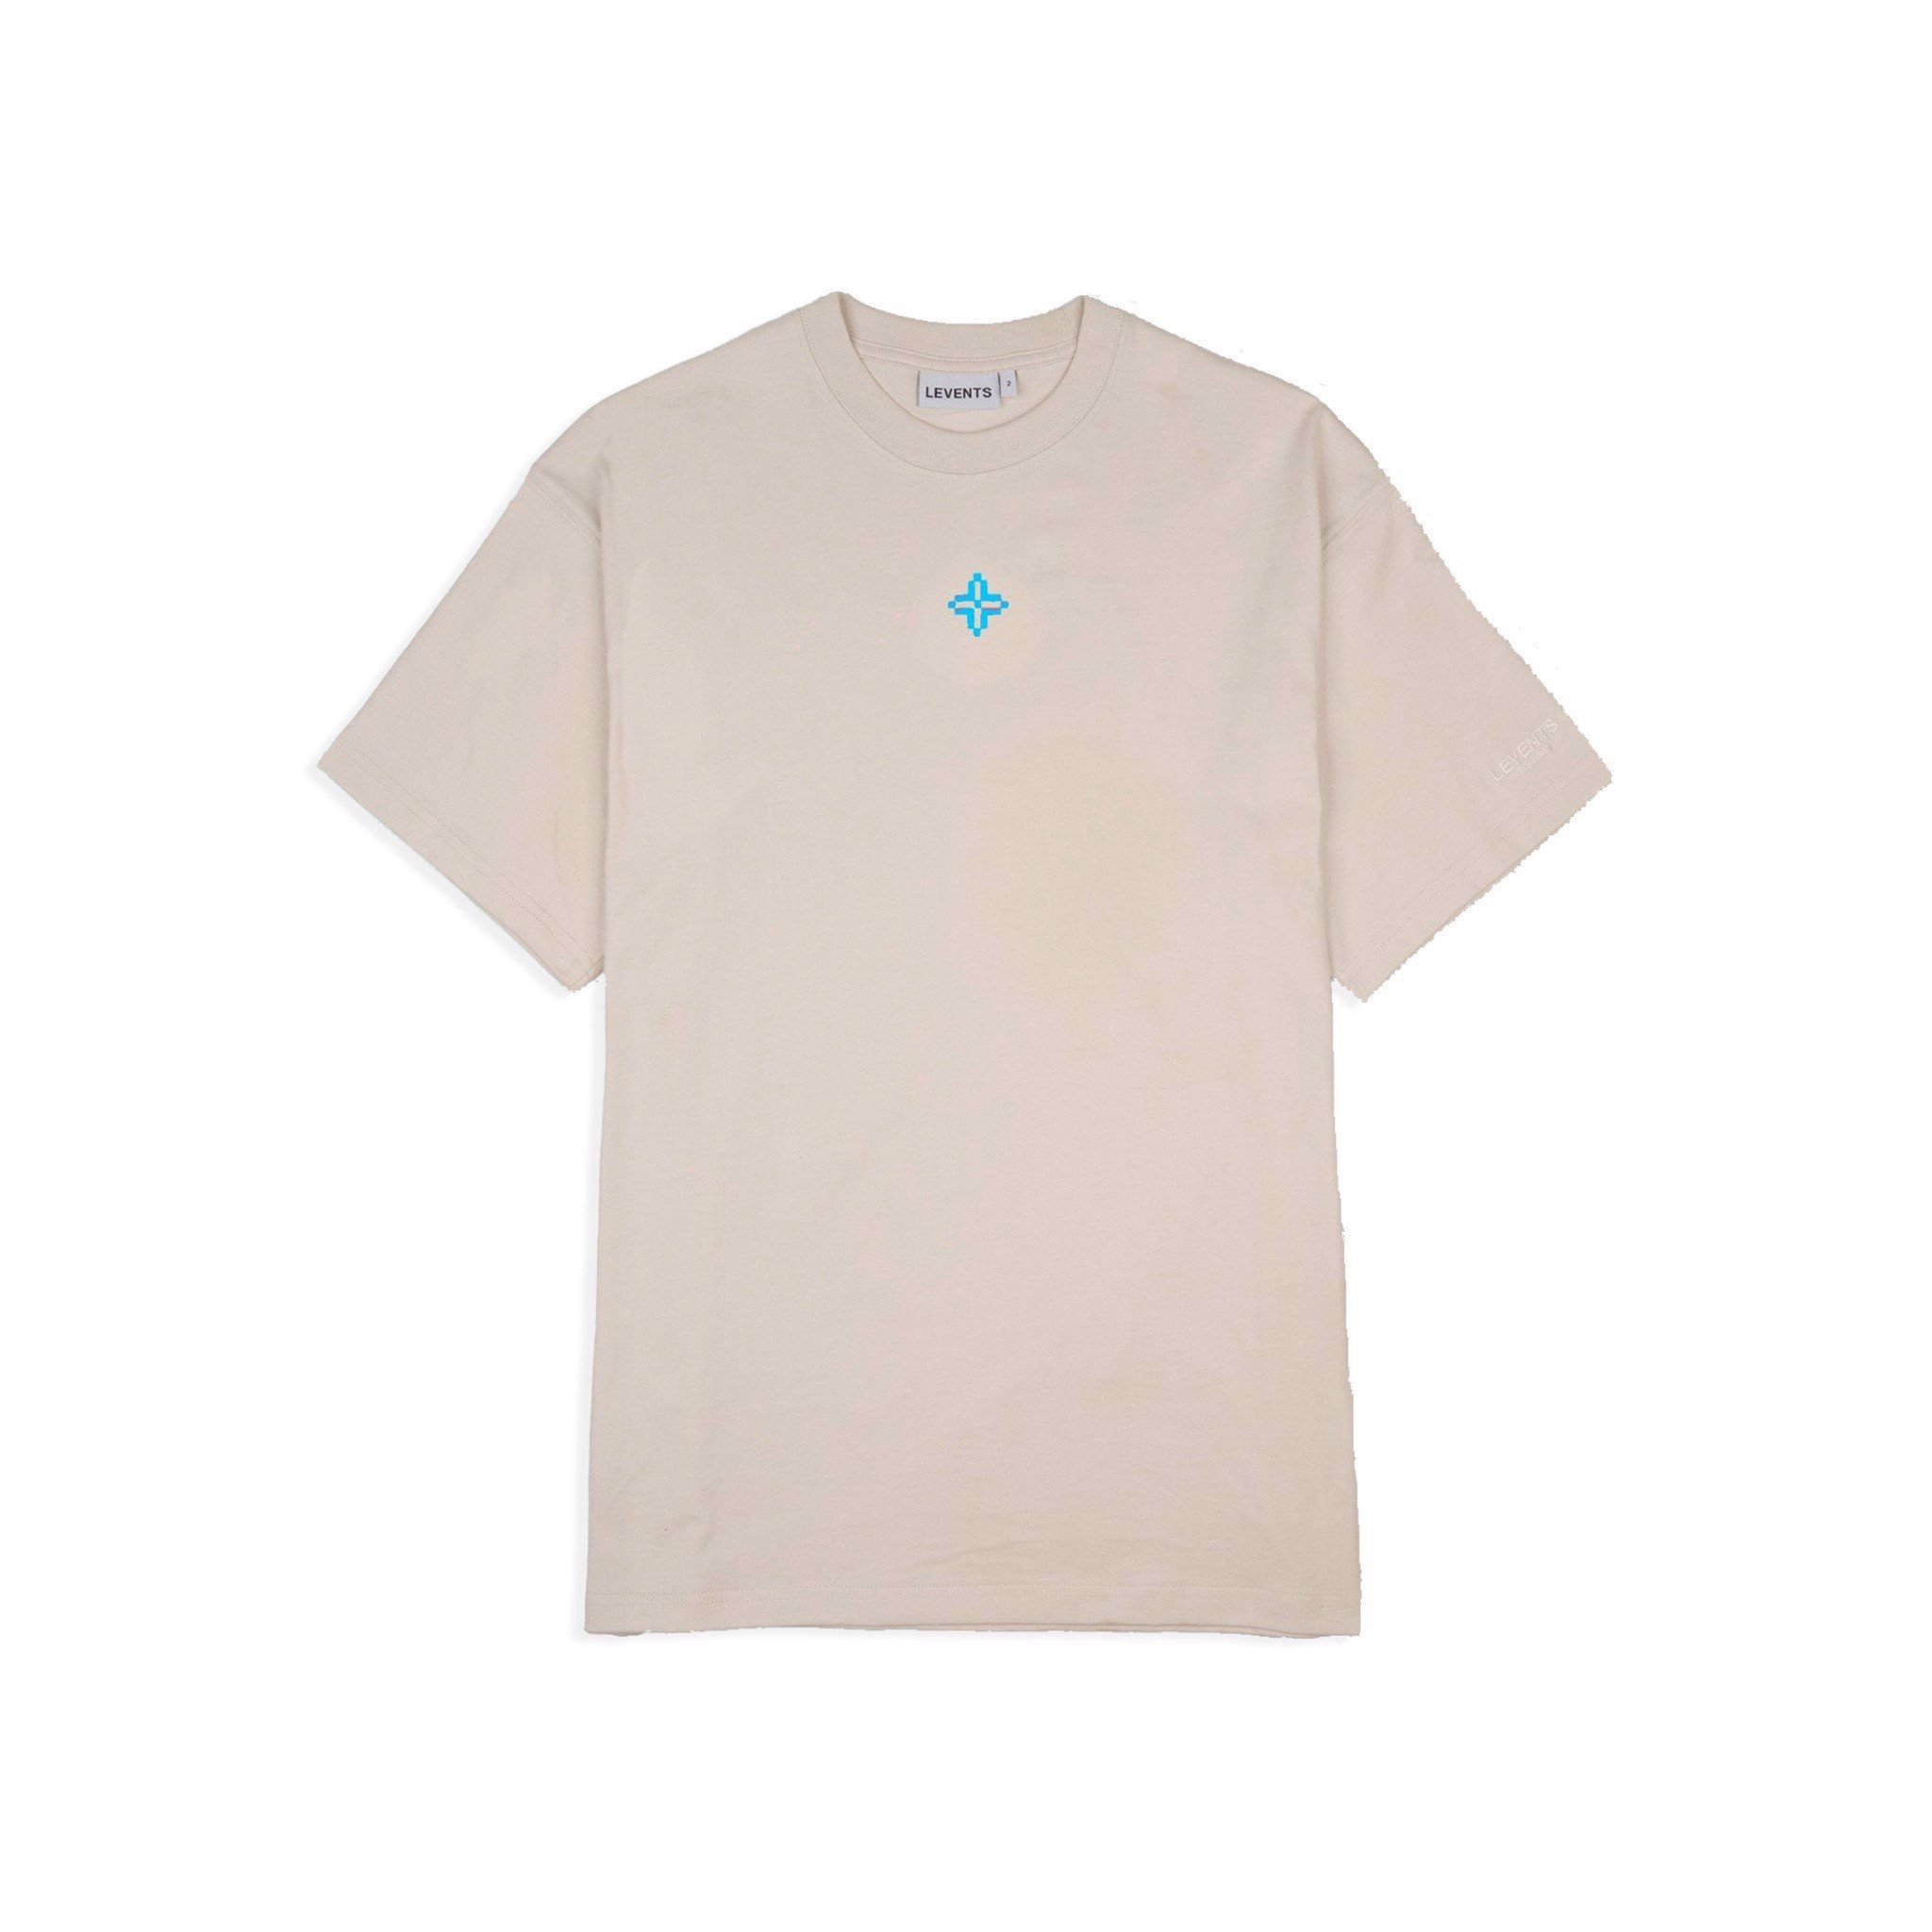 LVS XL LOGO TEE - BROWN/BLUE